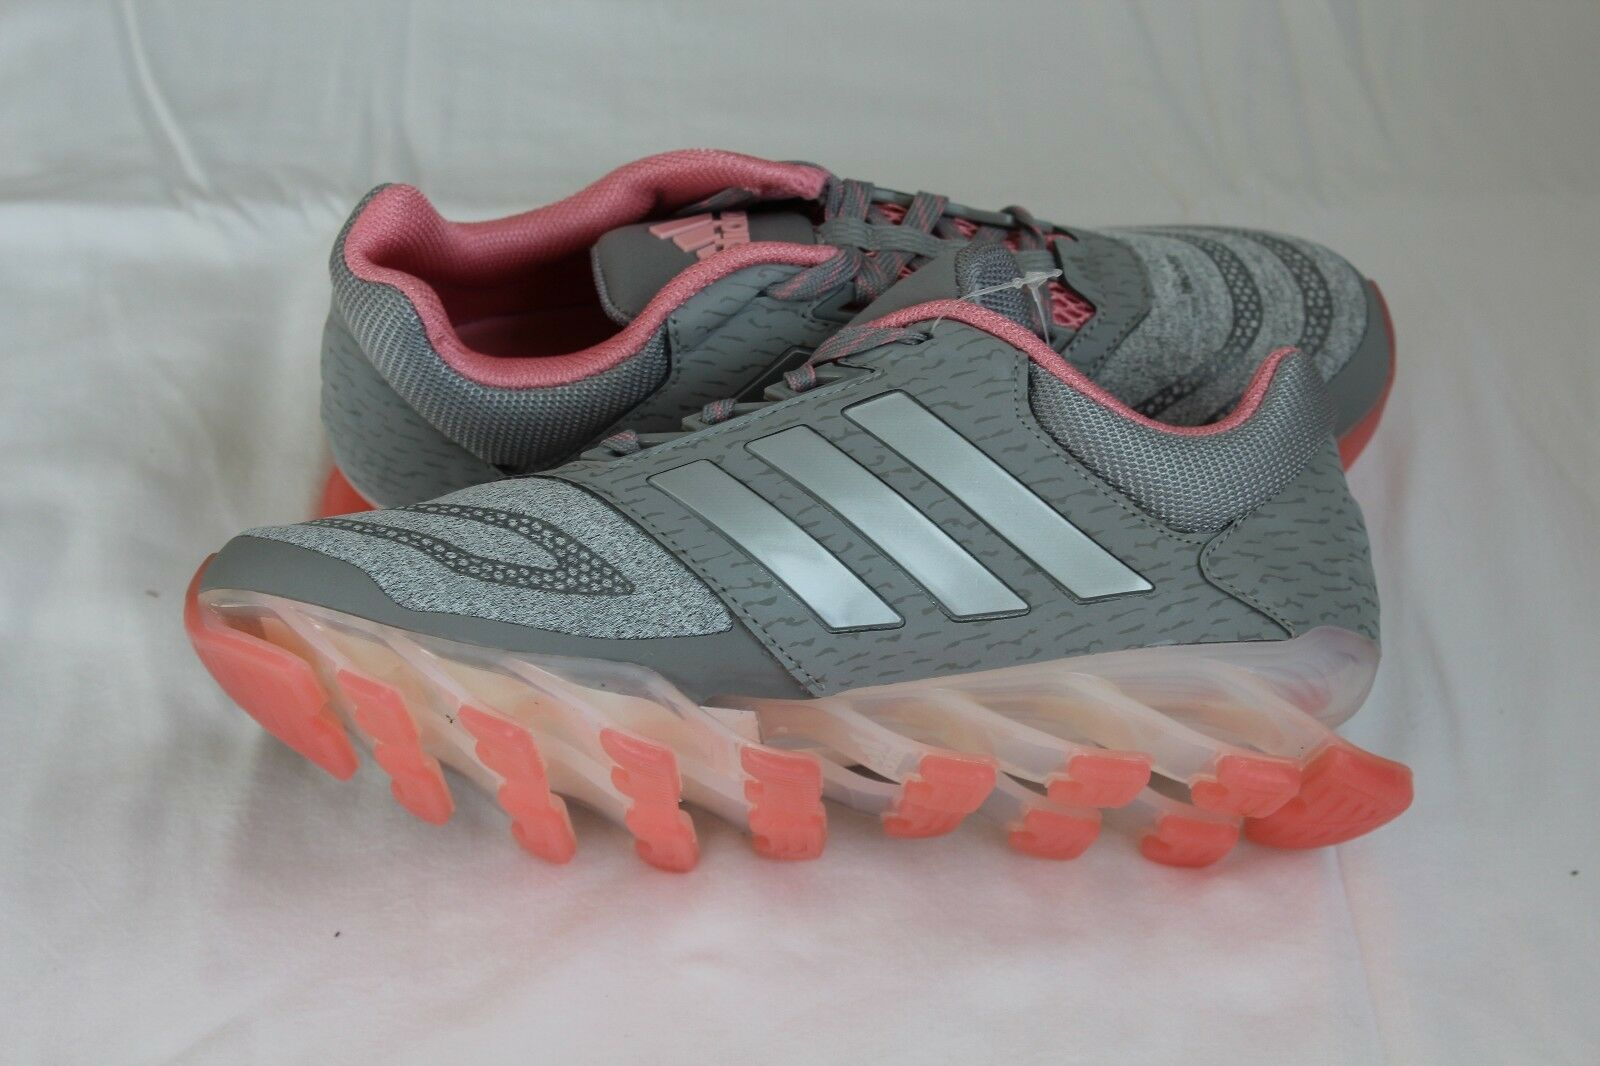 ADIDAS LADIES SPRINGBLADE DRIVE 2 6 TRAINERS UK 3.5 - 6 2 d8c5a6